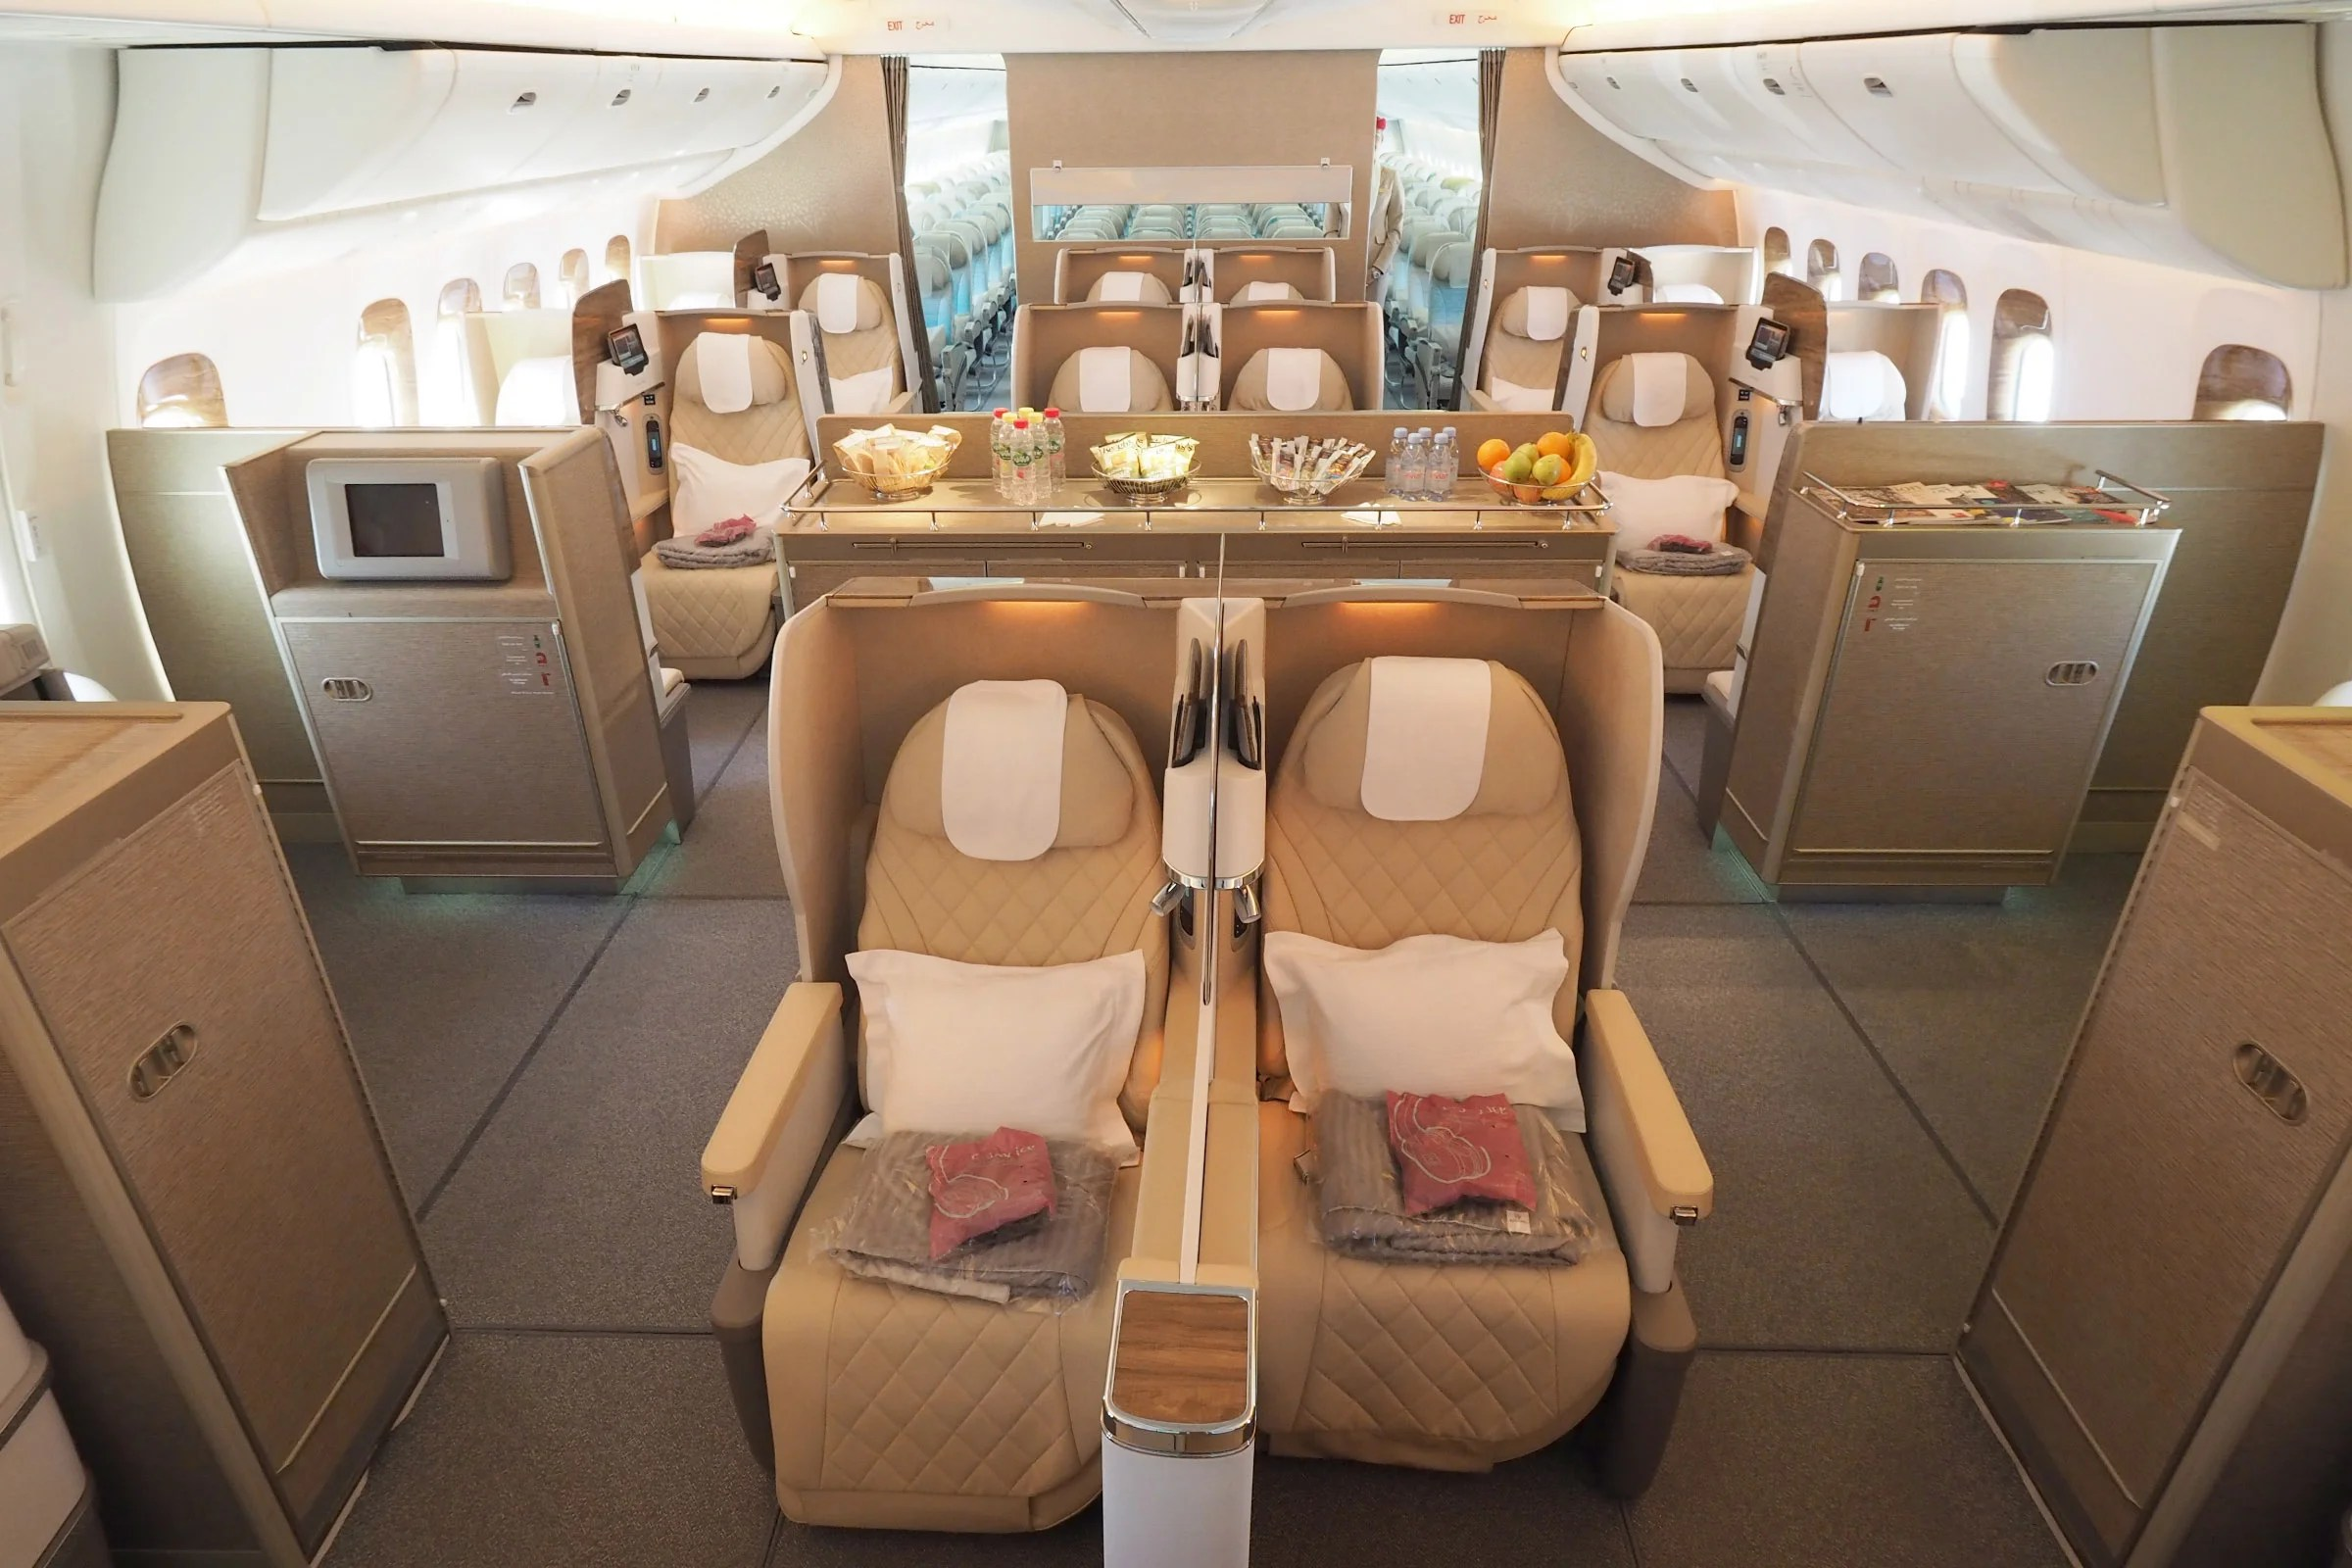 Emirates Rolls out 'Basic' Biz-Class Fares with No Lounge Access or Seat Selection